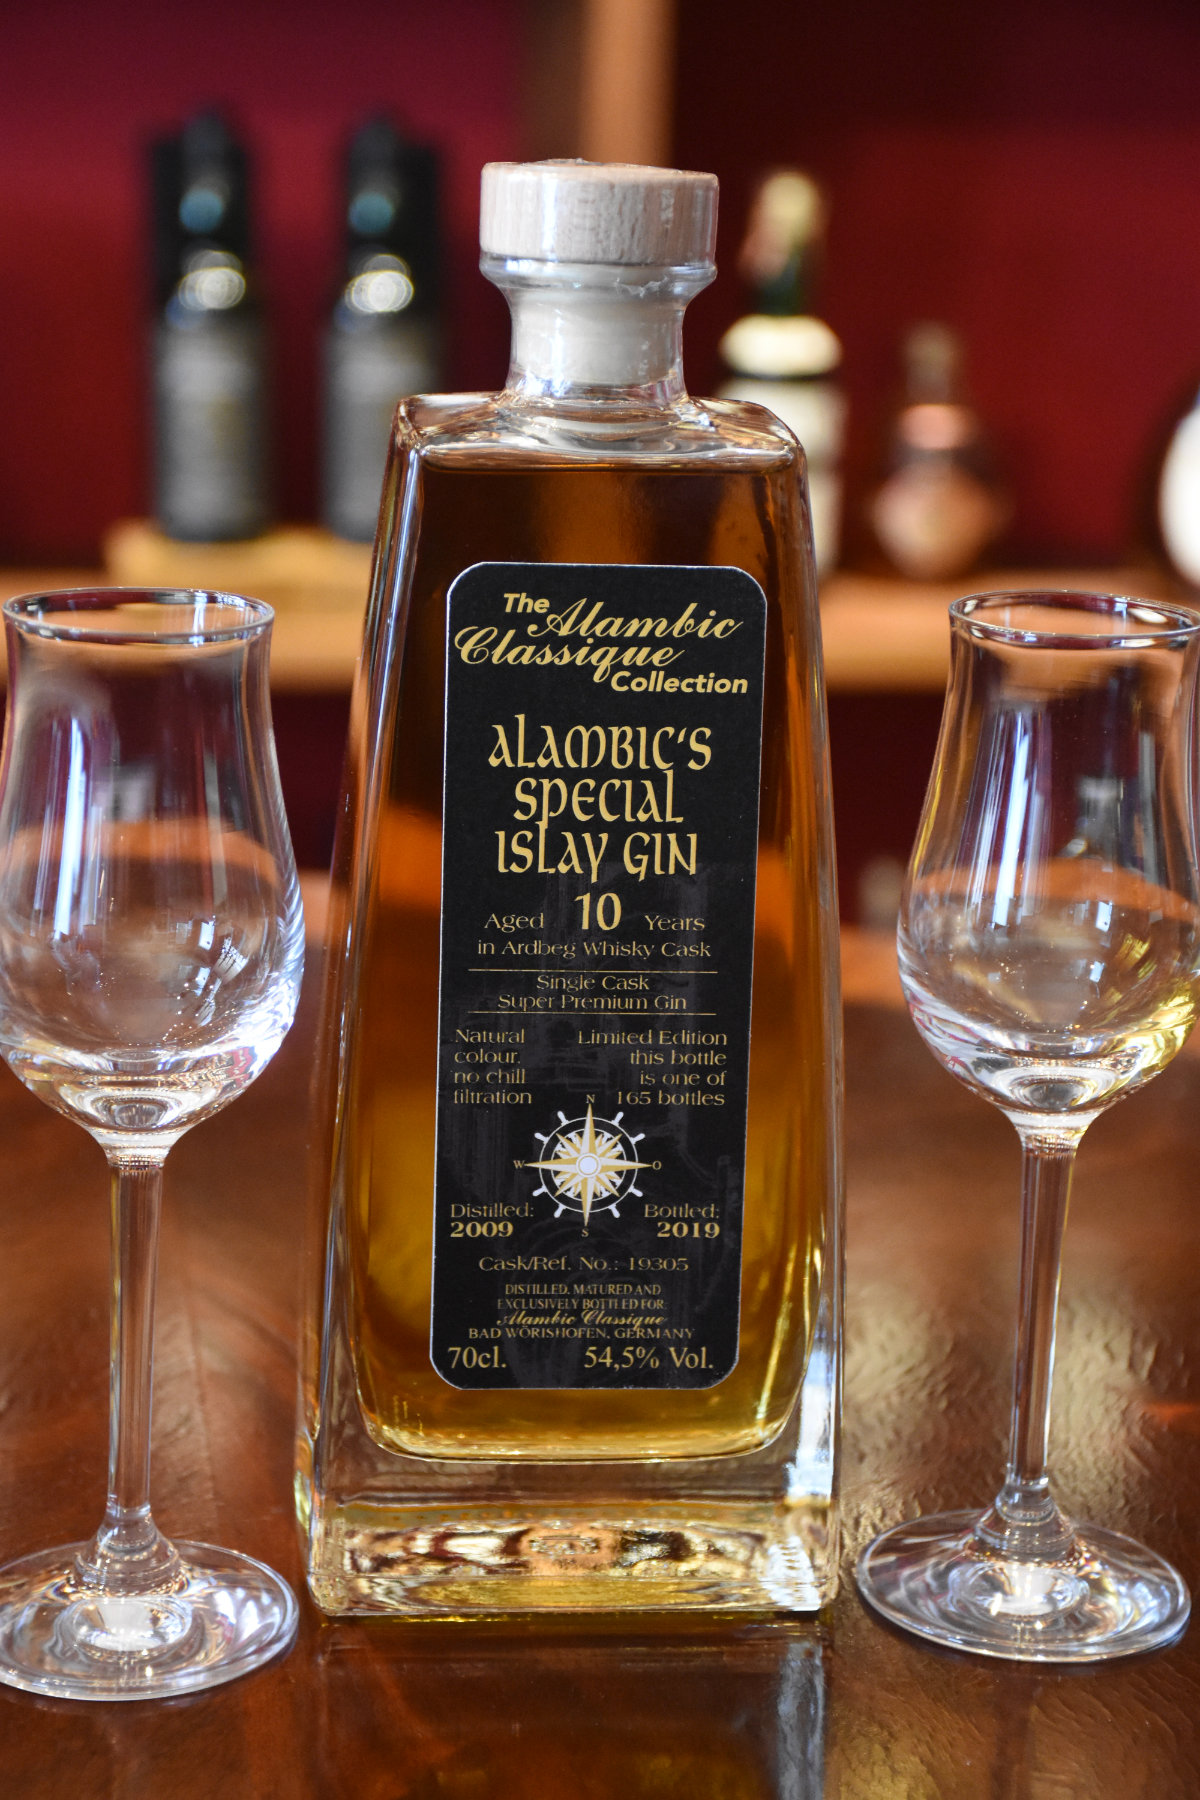 Alambic's Special Islay Gin, aged 10 years, 54,5% Vol., 70cl, The Alambic Classique Collection, Geschenkpackung